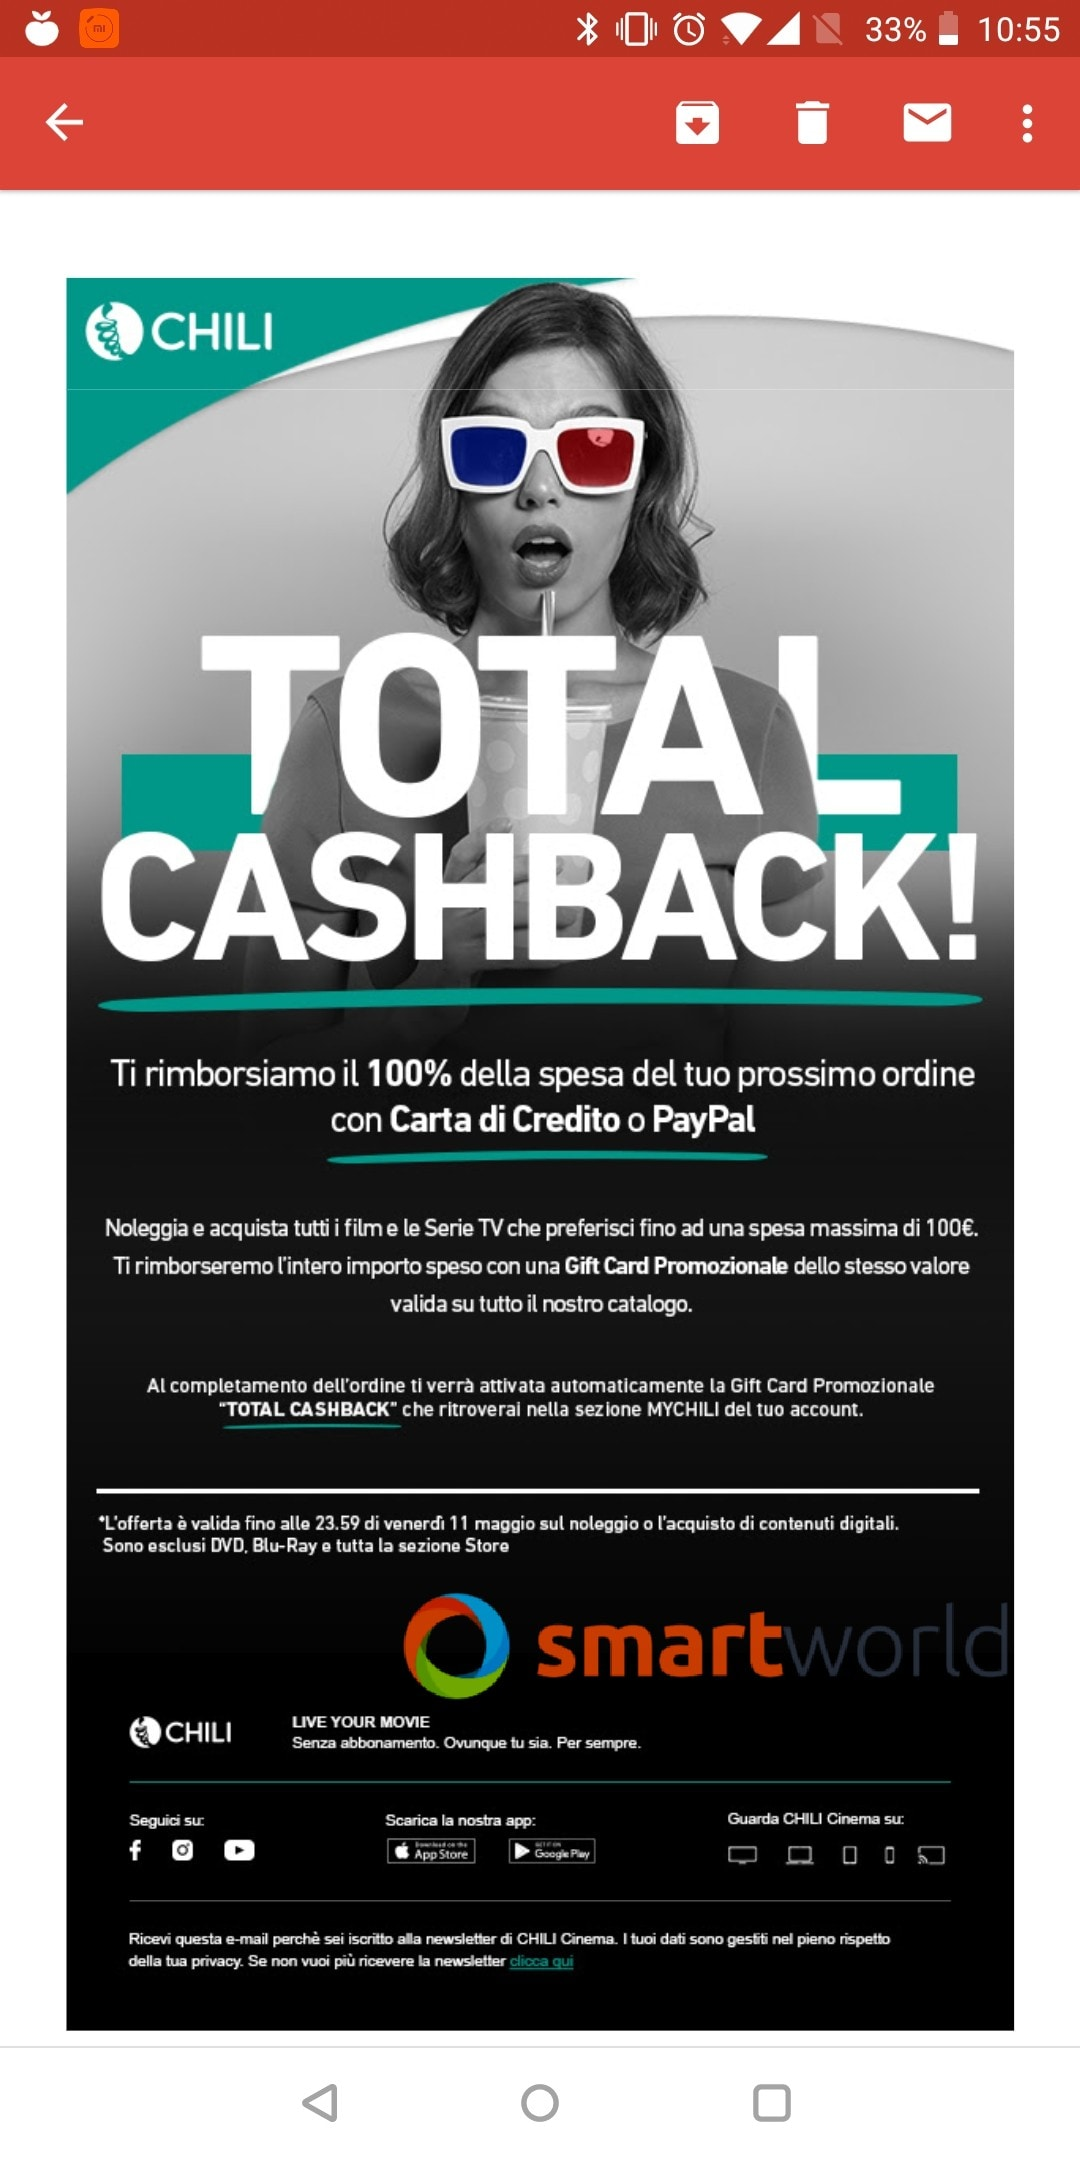 chili cinema total cashback